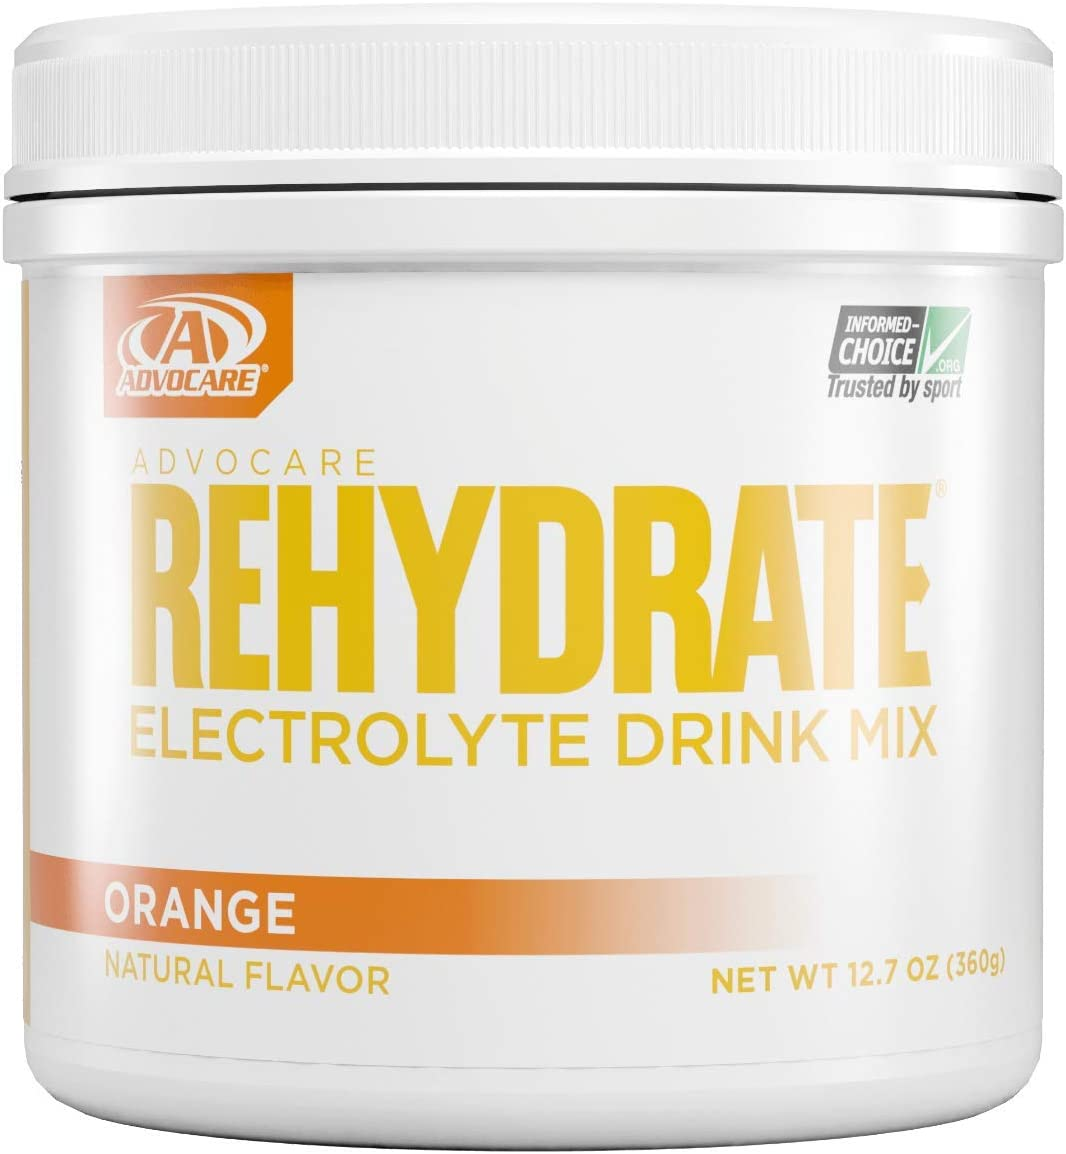 Advocare Rehydrate Electrolyte Replacement Drink Mix Orange12.7 oz